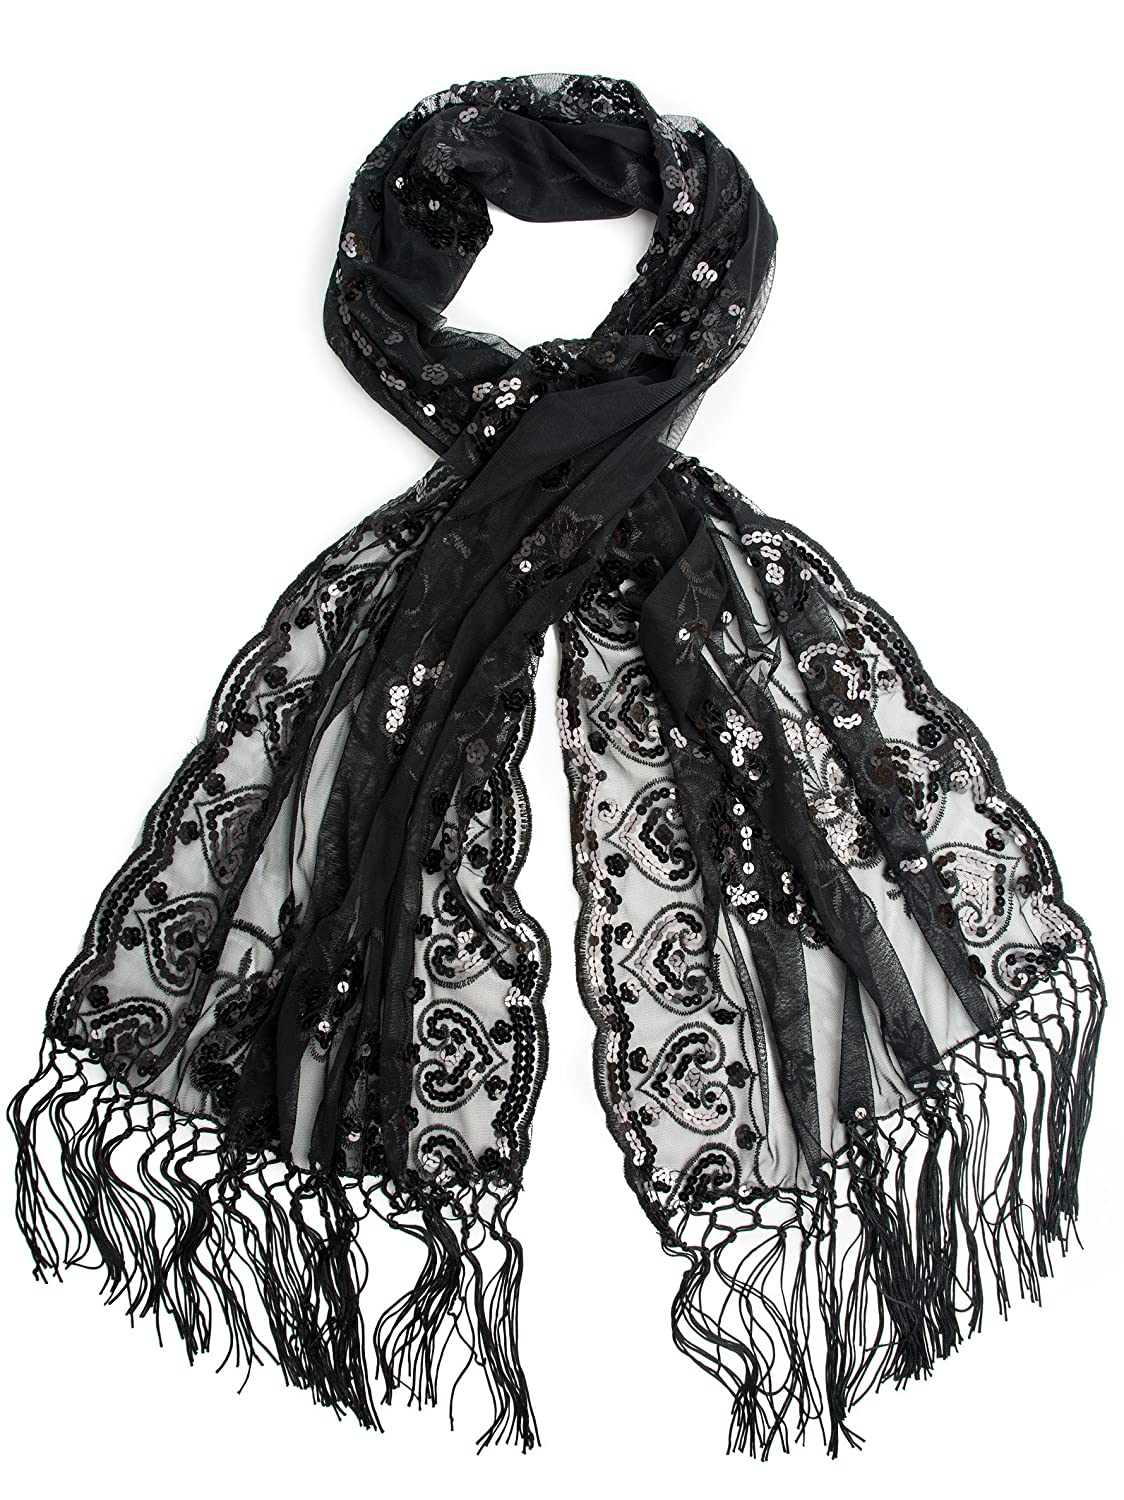 Shawls & Wraps | Vintage Lace & Fur Evening Scarves Bohomonde Madison Shawl Long Fringe Sequin Evening Wrap $16.95 AT vintagedancer.com